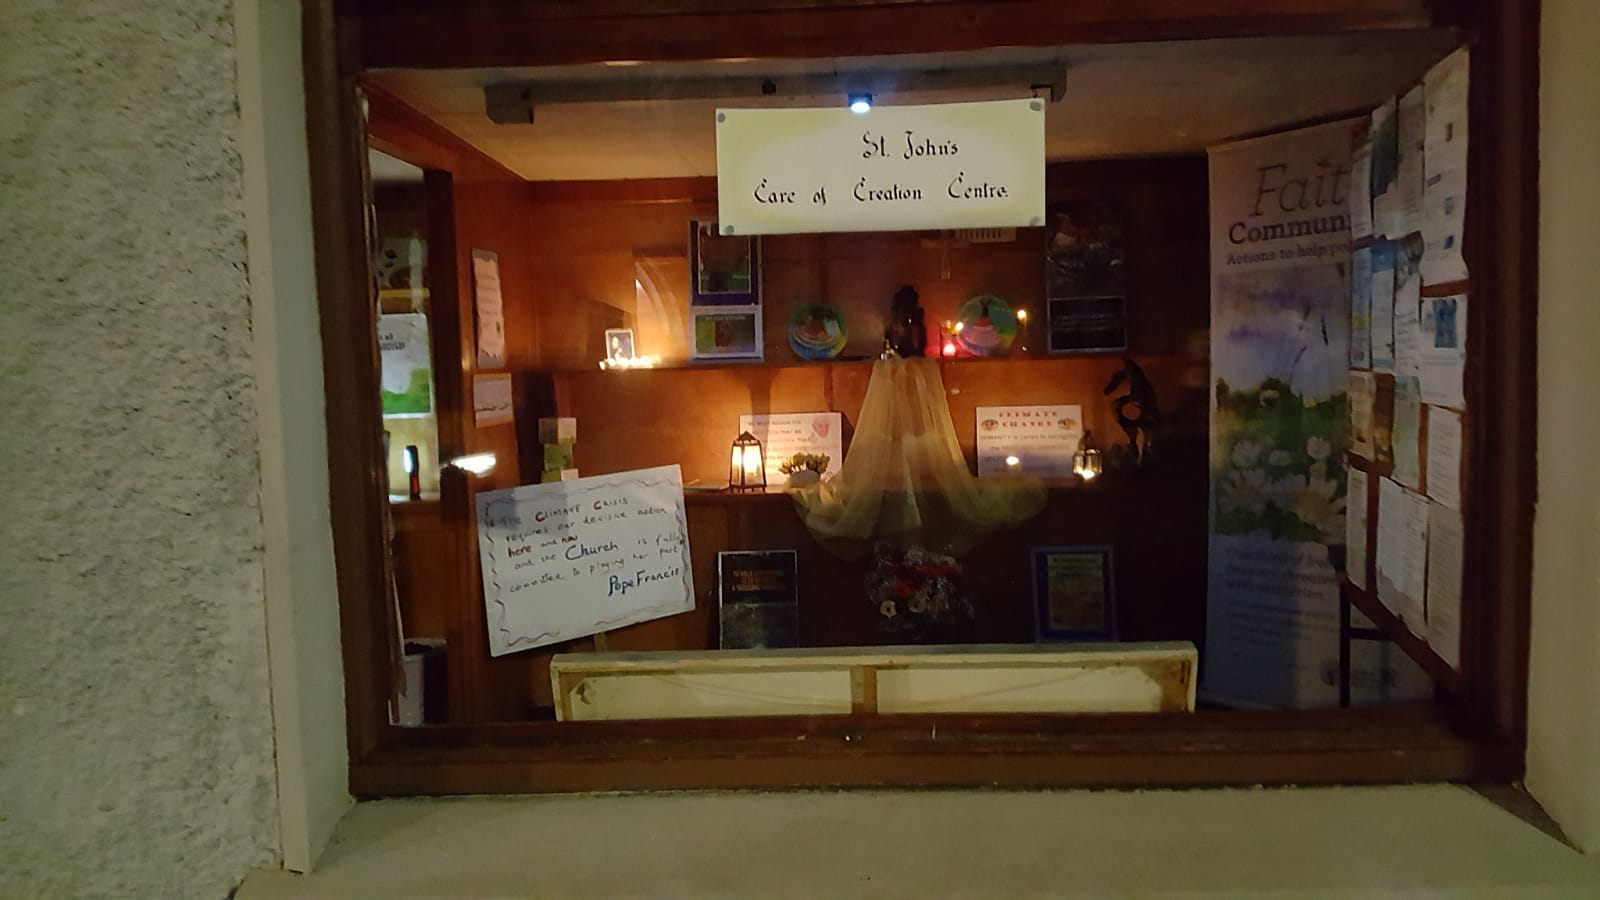 Care of Creation, St John's, Tralee